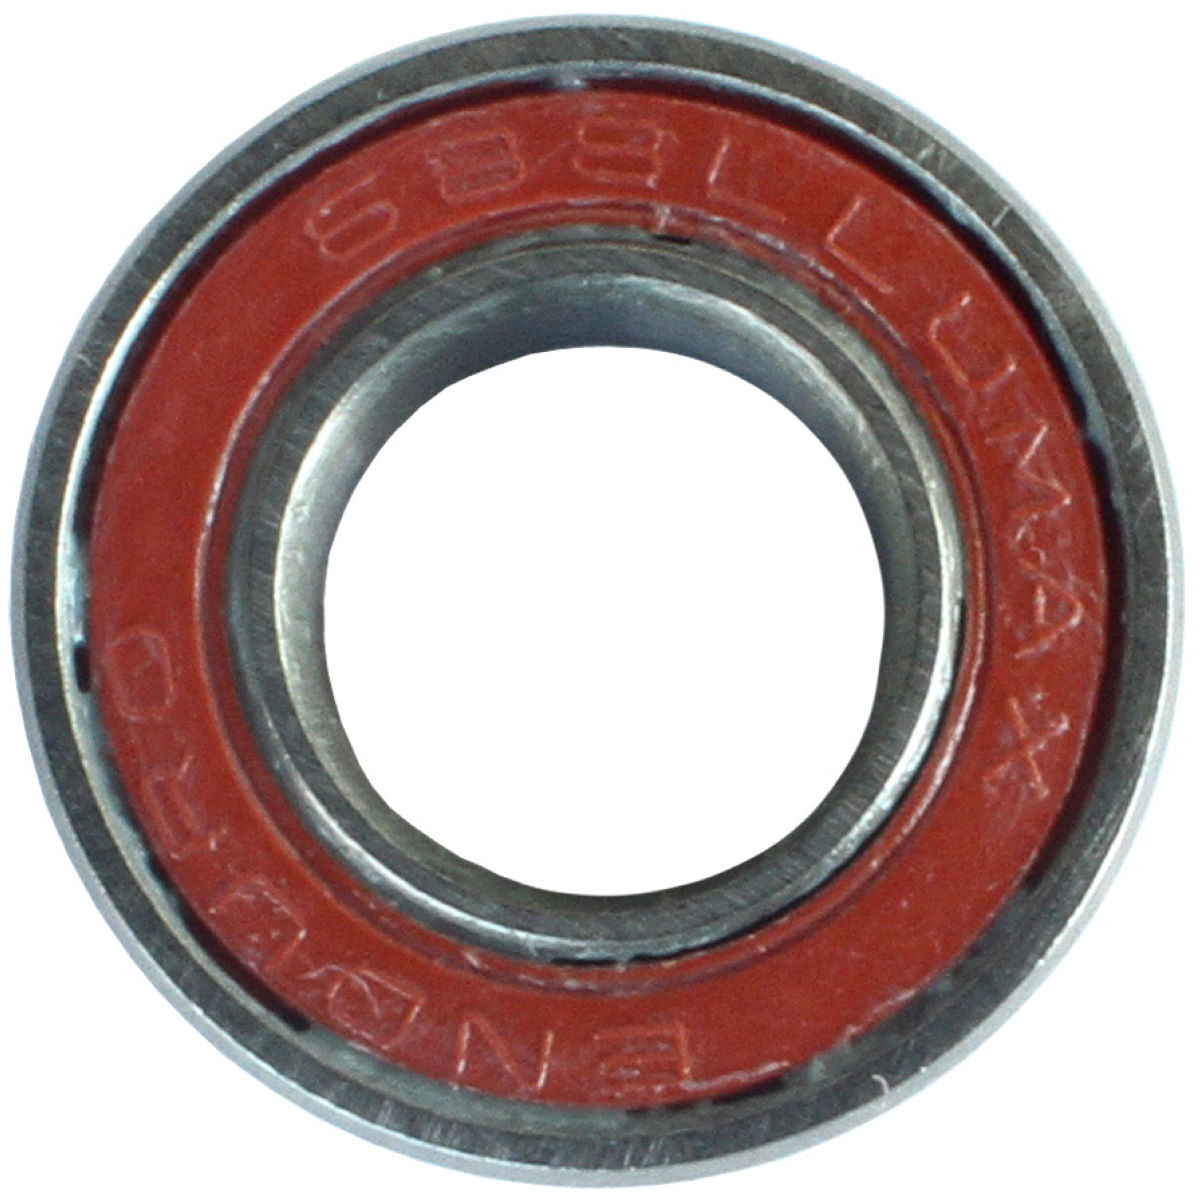 Enduro Bearings Enduro Bearings ABEC3 688 LLU Max Bearing   Headsets